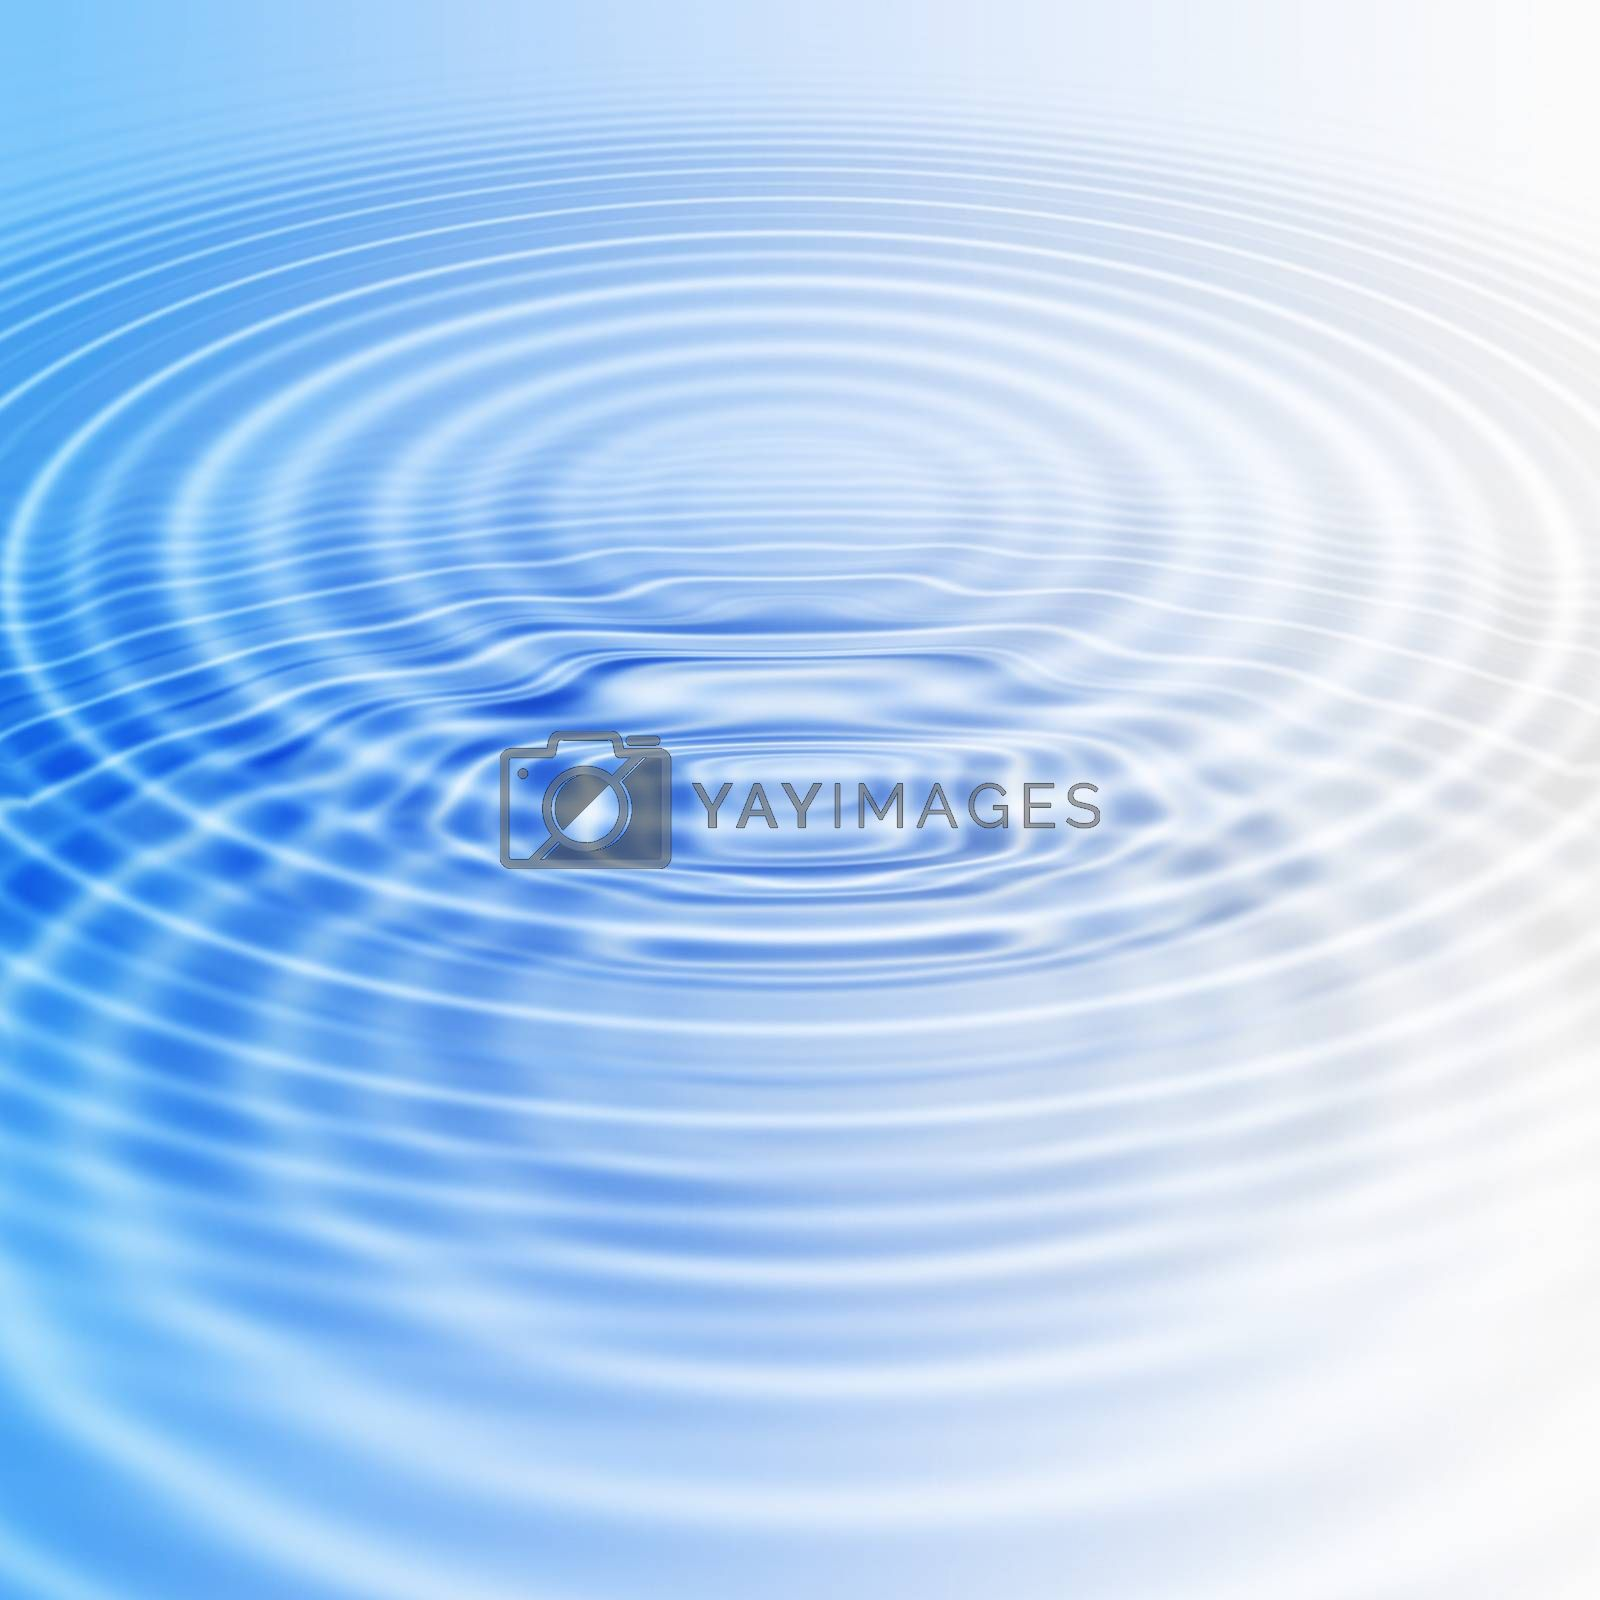 Abstract background with water ripples